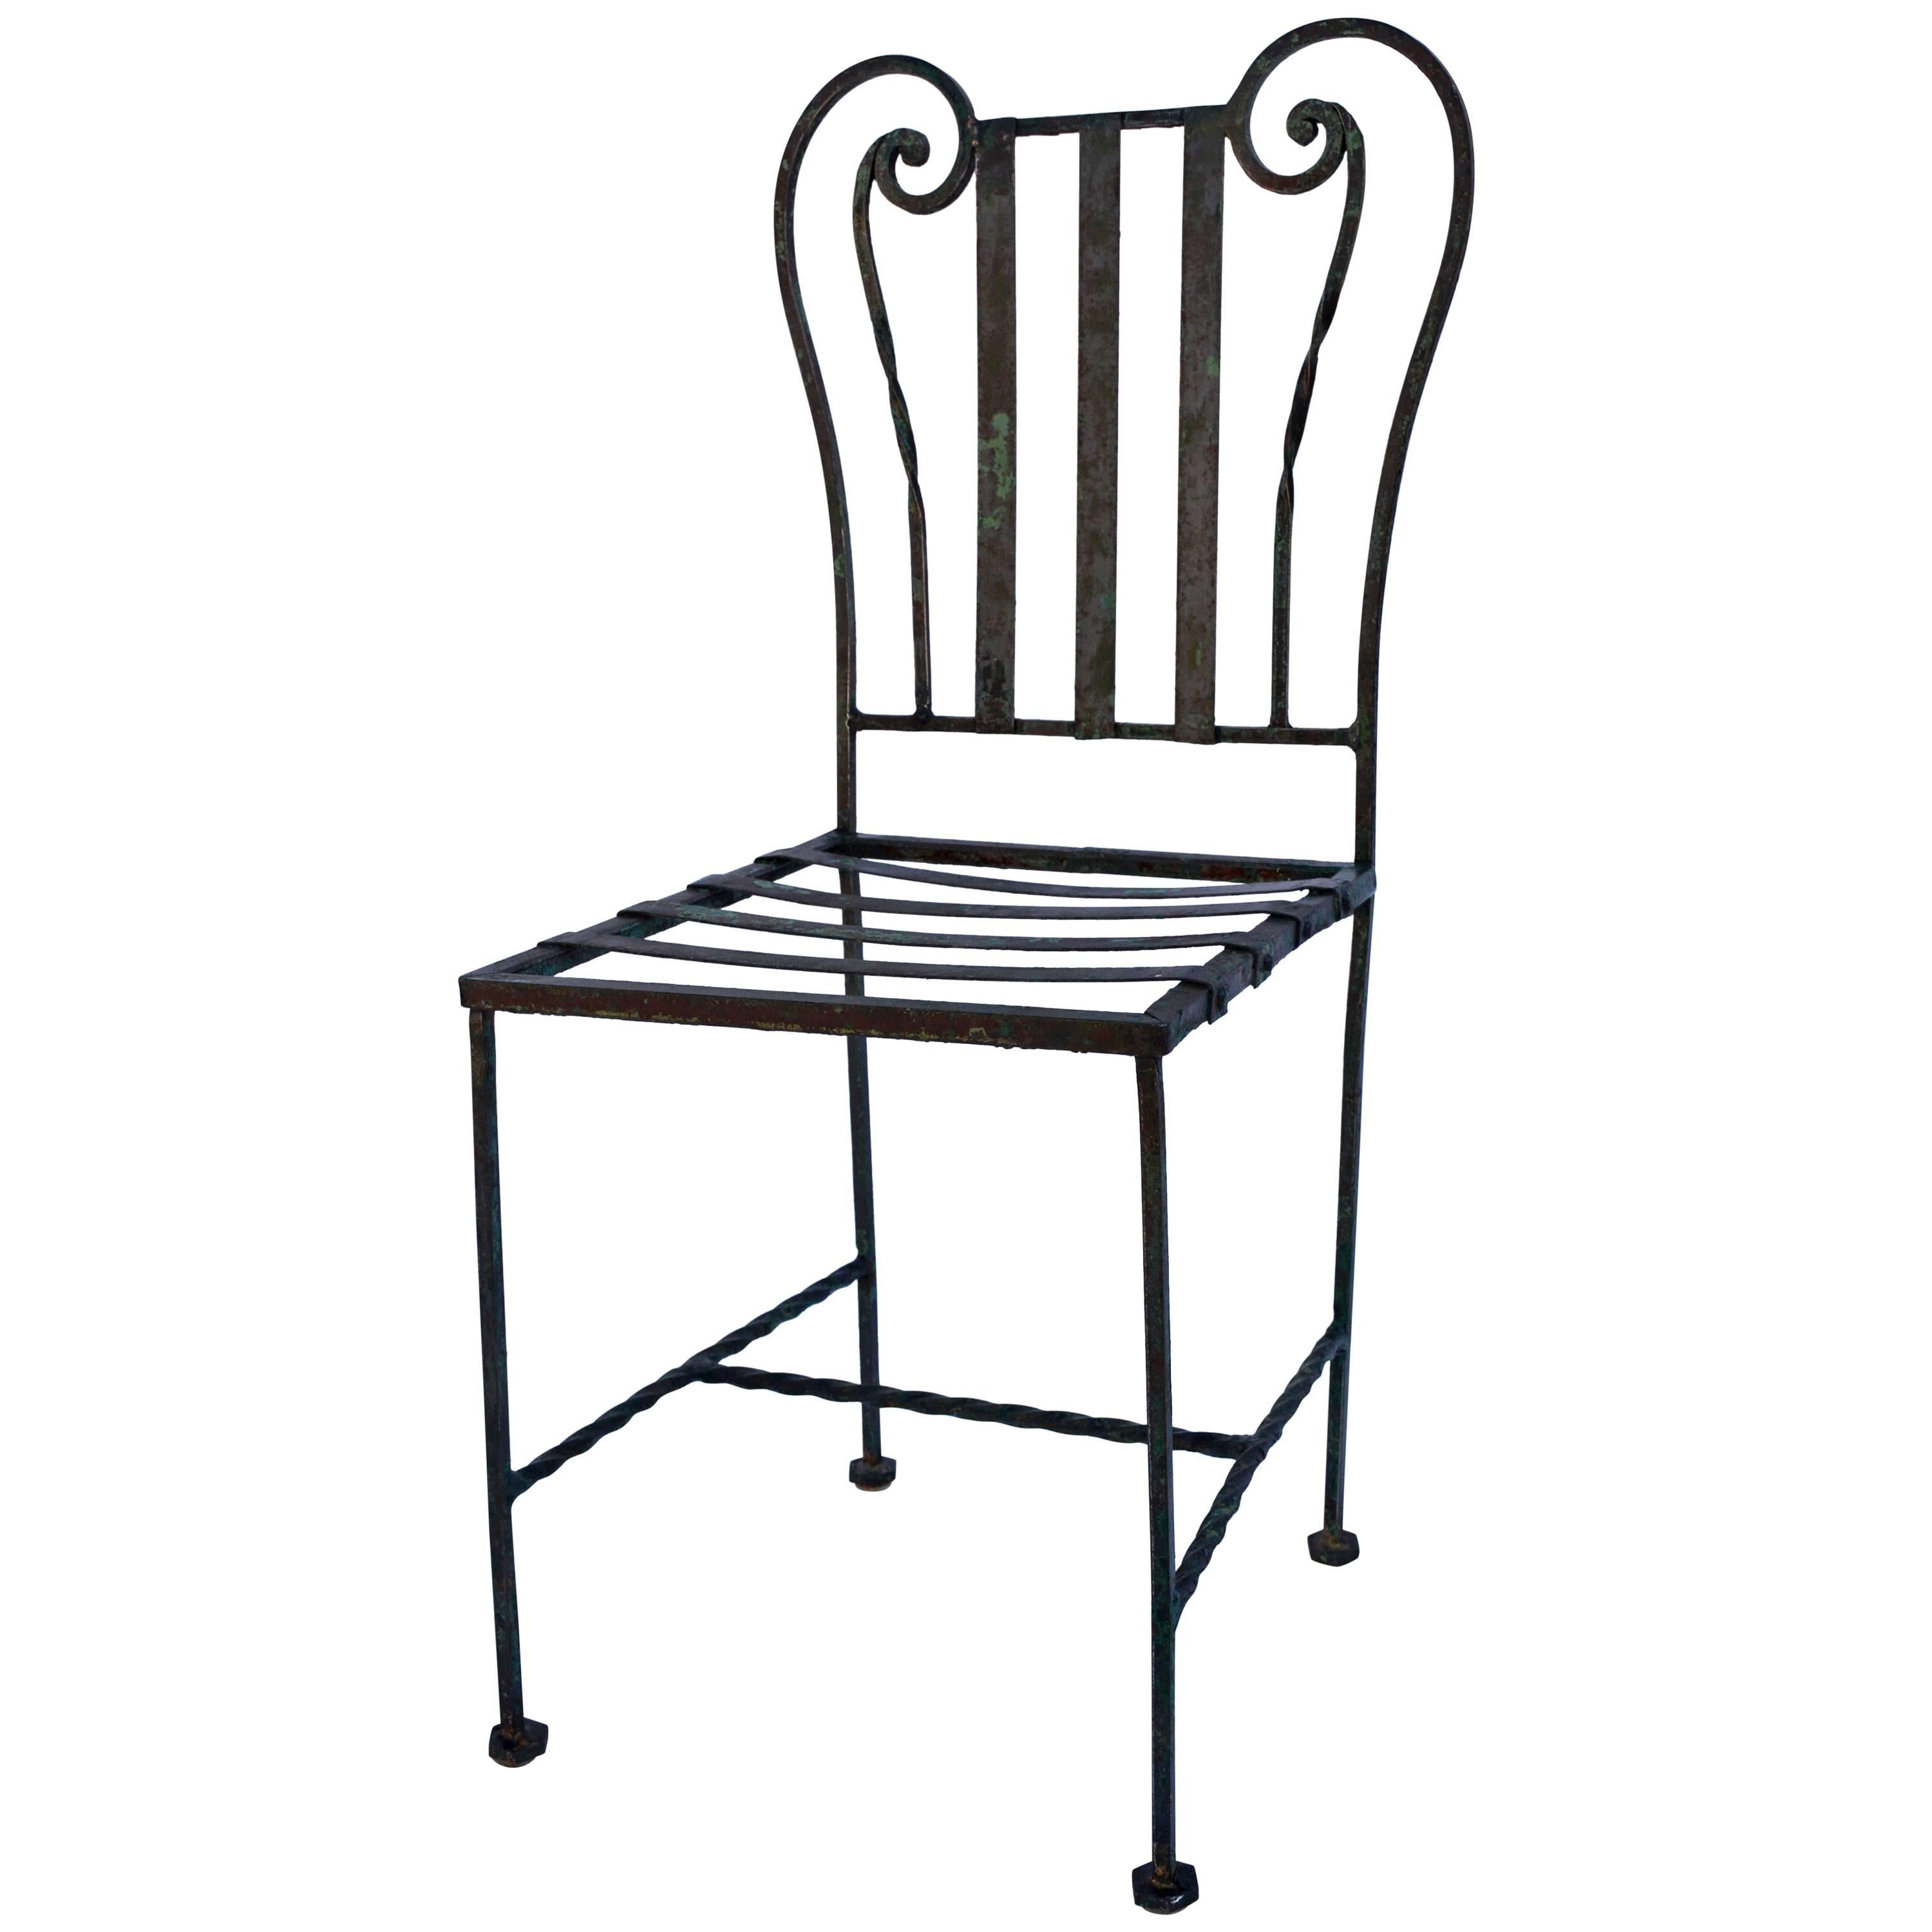 Lyre-Style Wrought-Iron Cafe Chair For Sale  sc 1 st  1stDibs & Lyre-Style Wrought-Iron Cafe Chair For Sale at 1stdibs